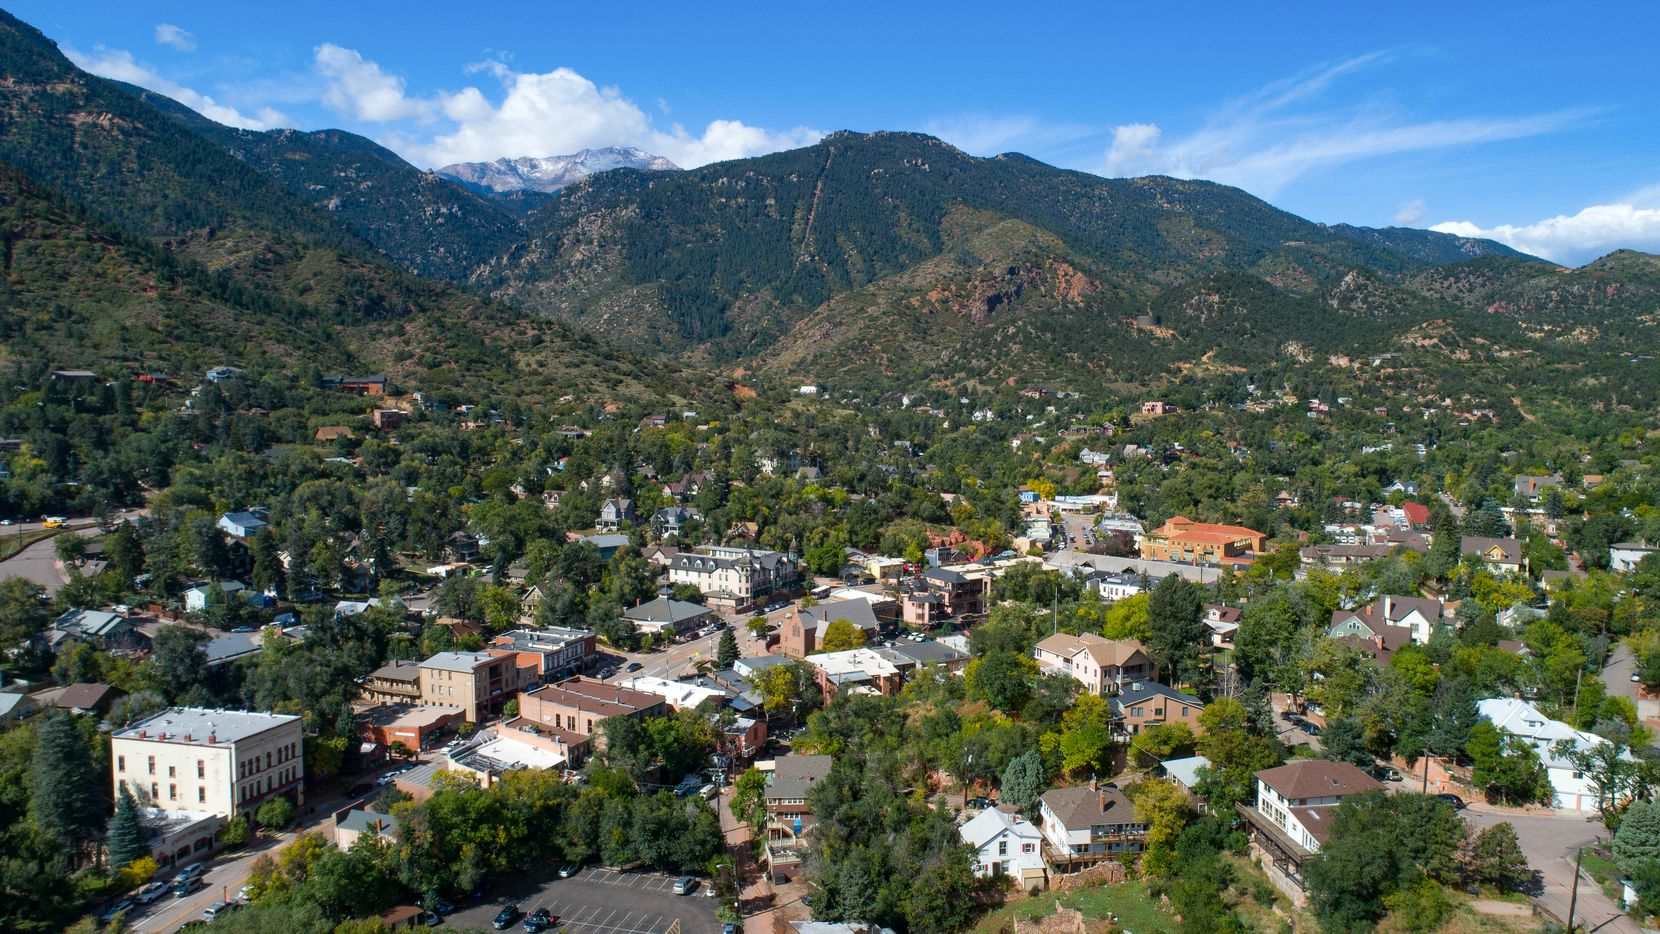 Pikes Peak looms behind the town of Manitou Springs, Colo. The famous Pikes Peak Cog Railway departs from the town.